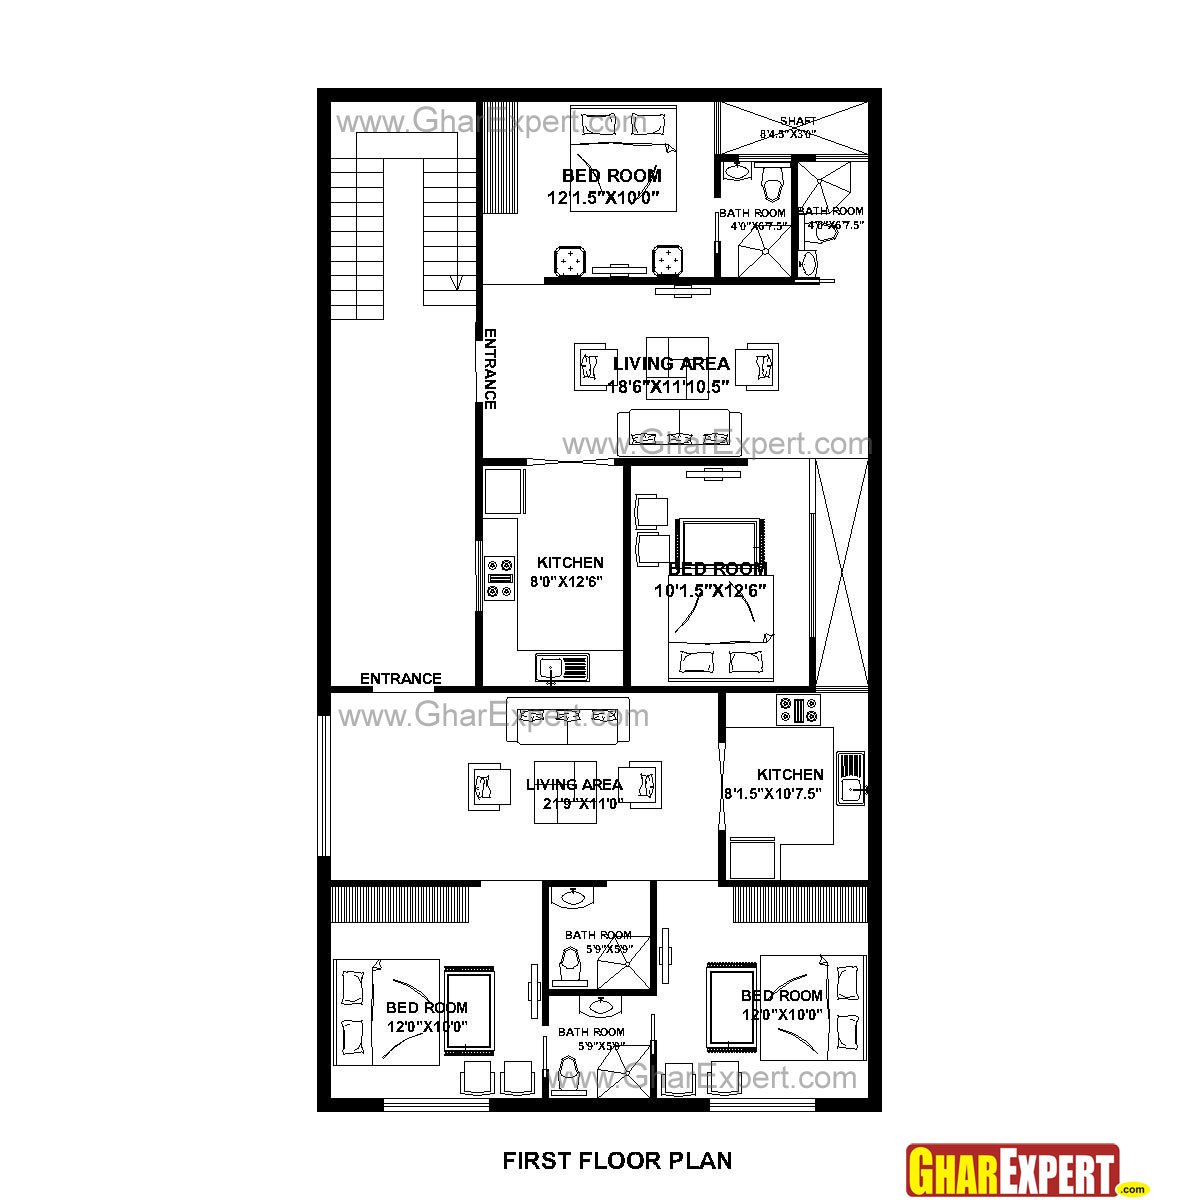 House plan for 32 feet by 58 feet plot plot size 206 square yards - Meter wide house plans ...